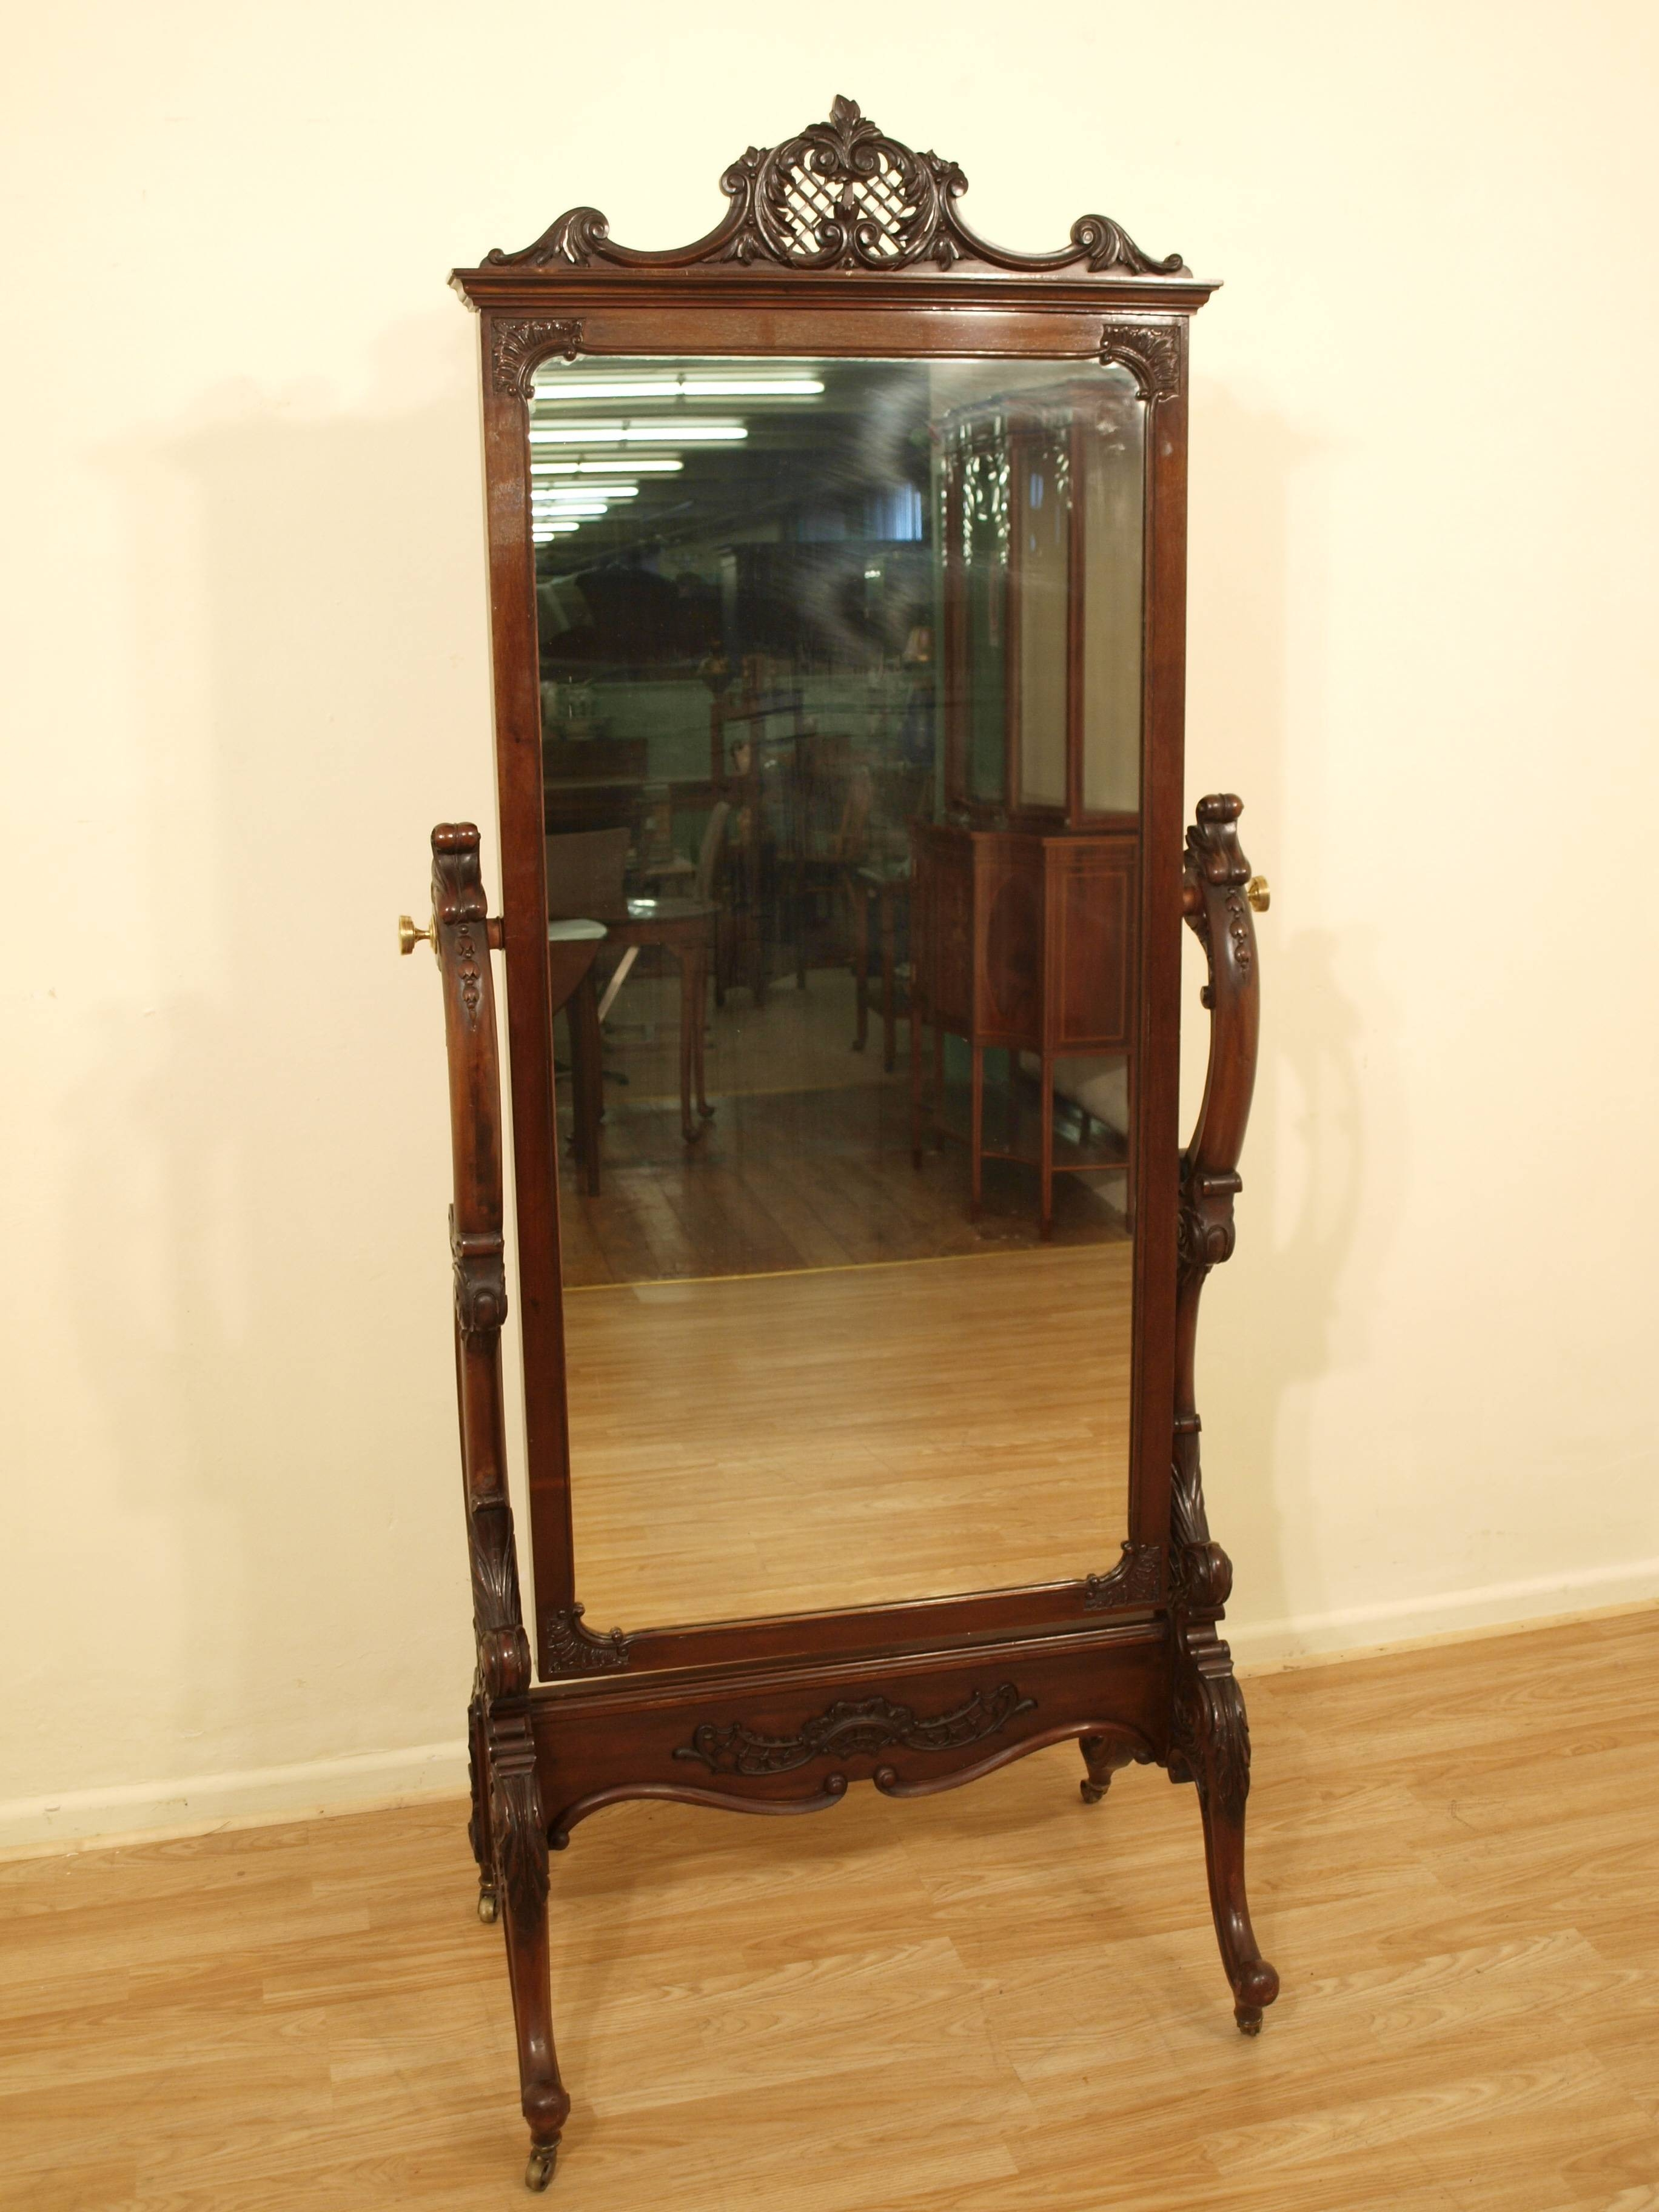 Antique Cheval Mirrors | Christian Davies Antiques Regarding Full Length Antique Mirrors (View 2 of 15)